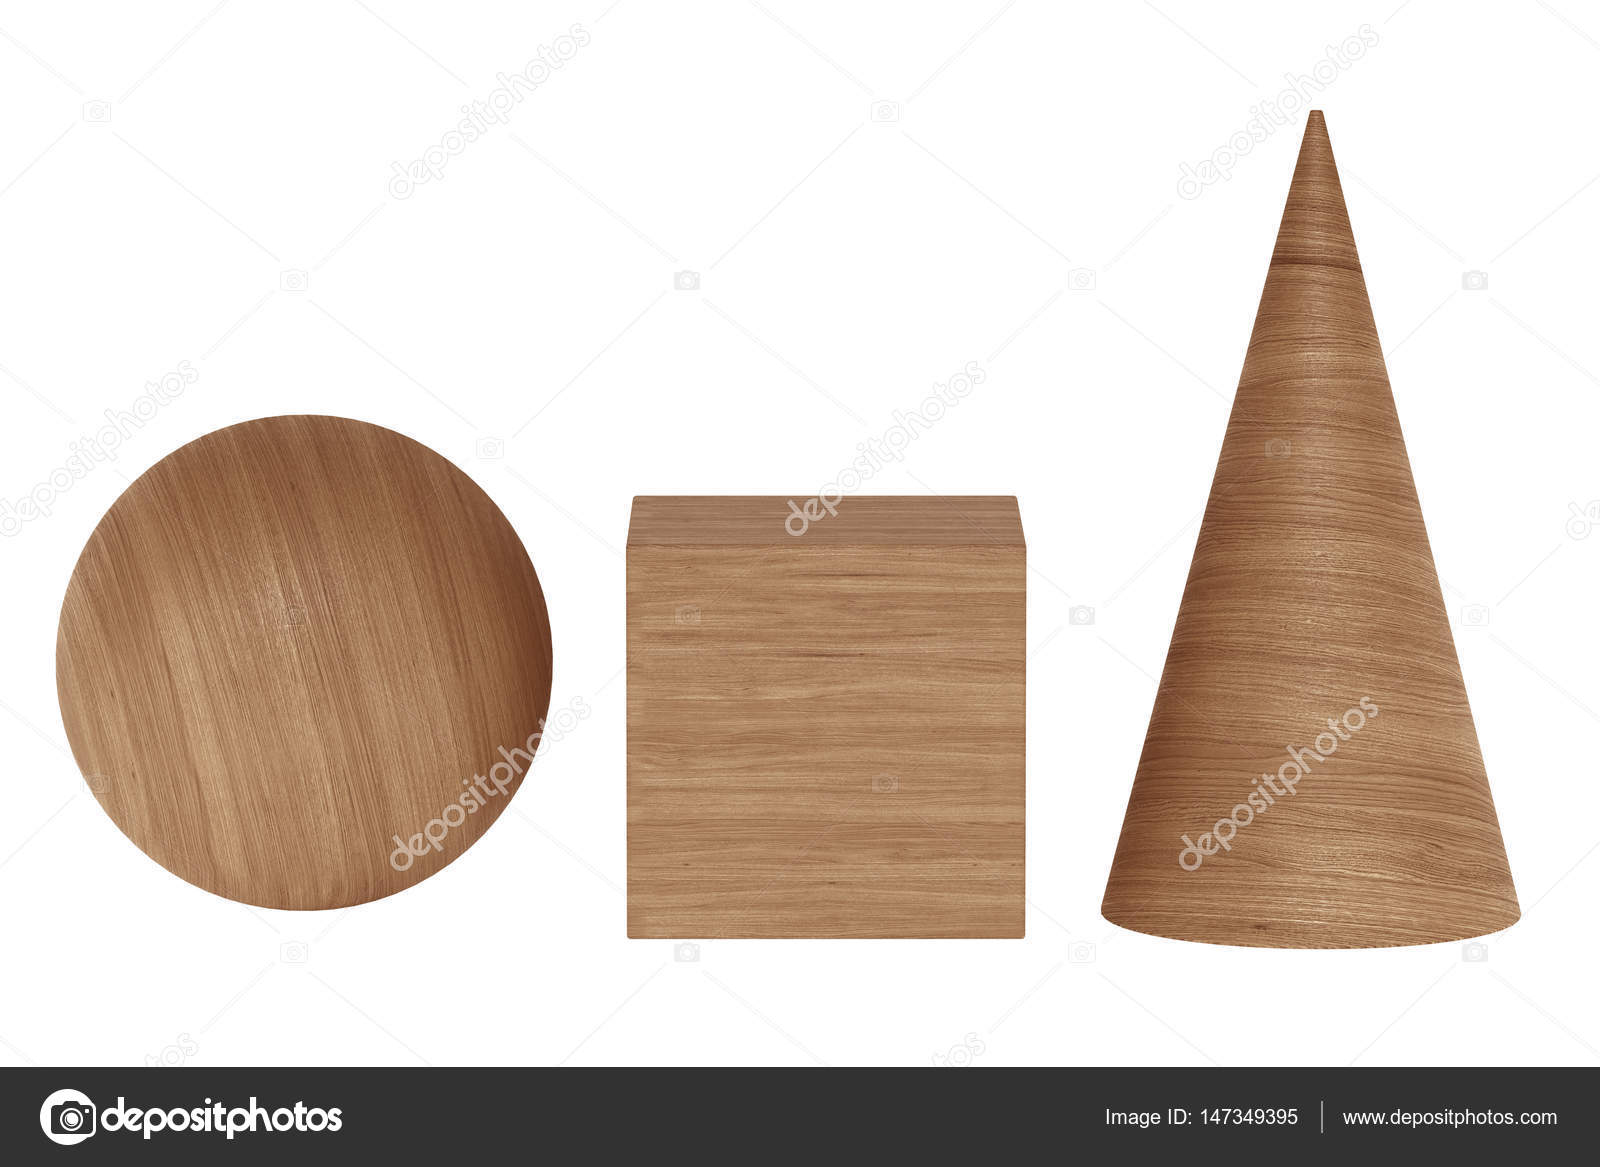 Wooden 3D rendering figures geometric with shadows isolated